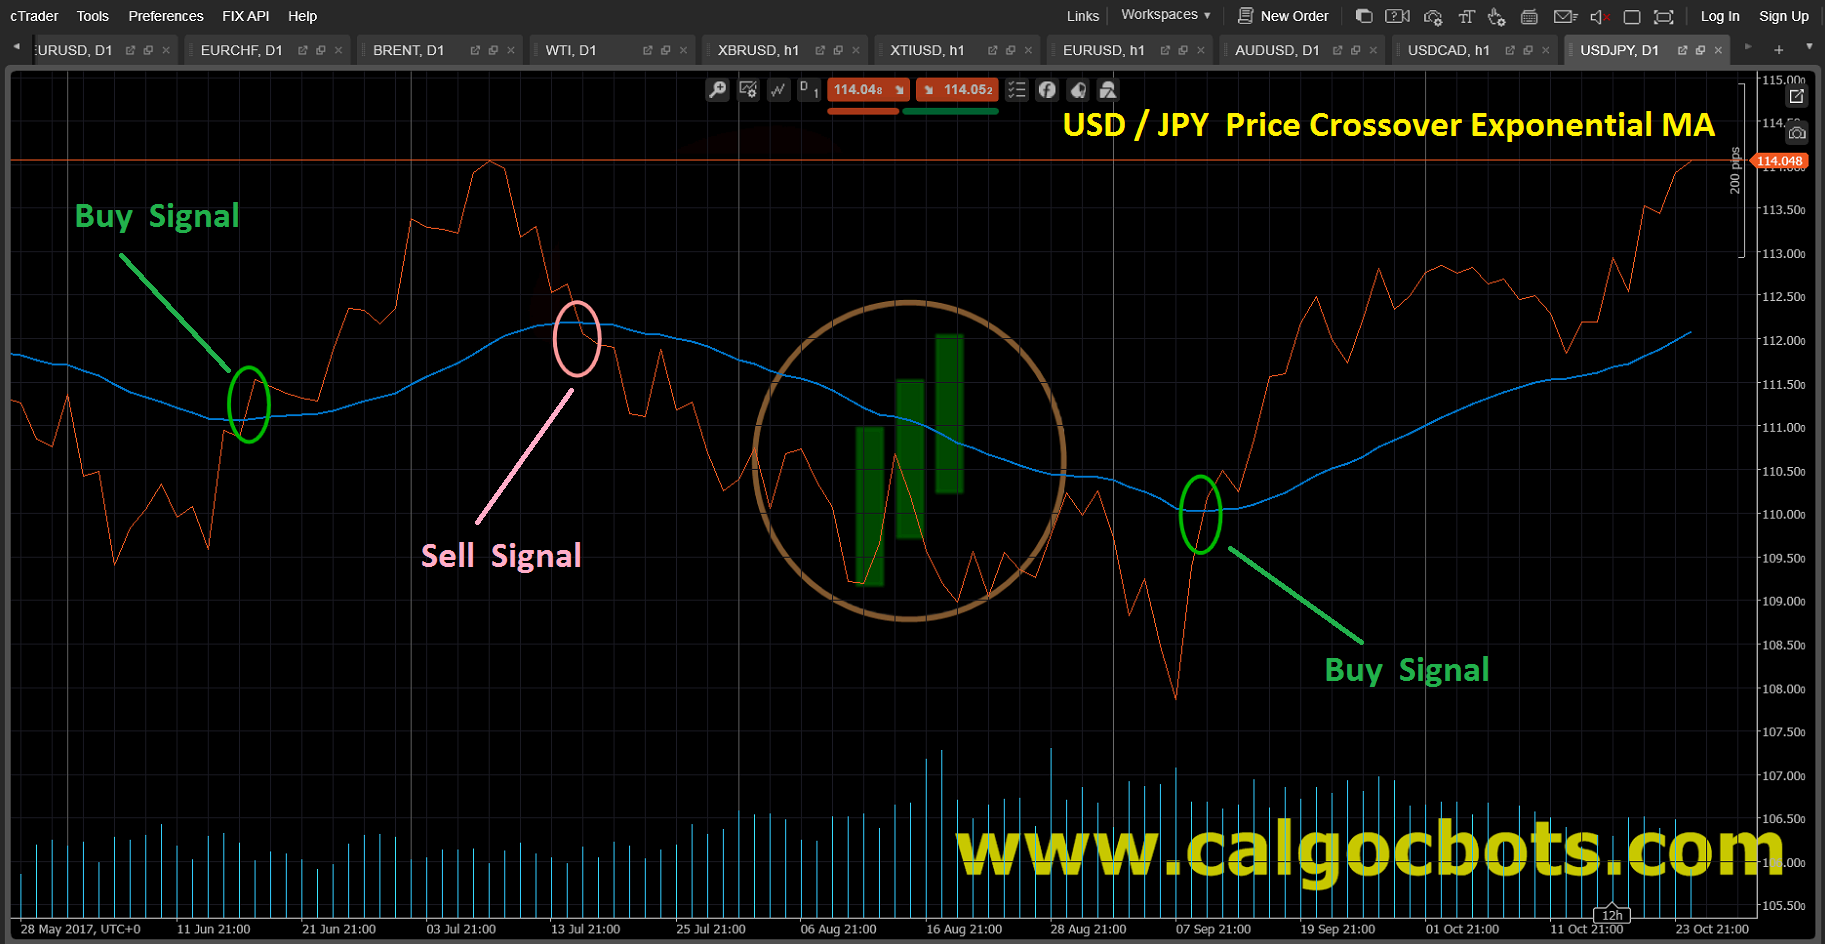 Price Crossover Exponential MA Line_Chart_USD_JPY_cAlgo_cBots_cTrader_01